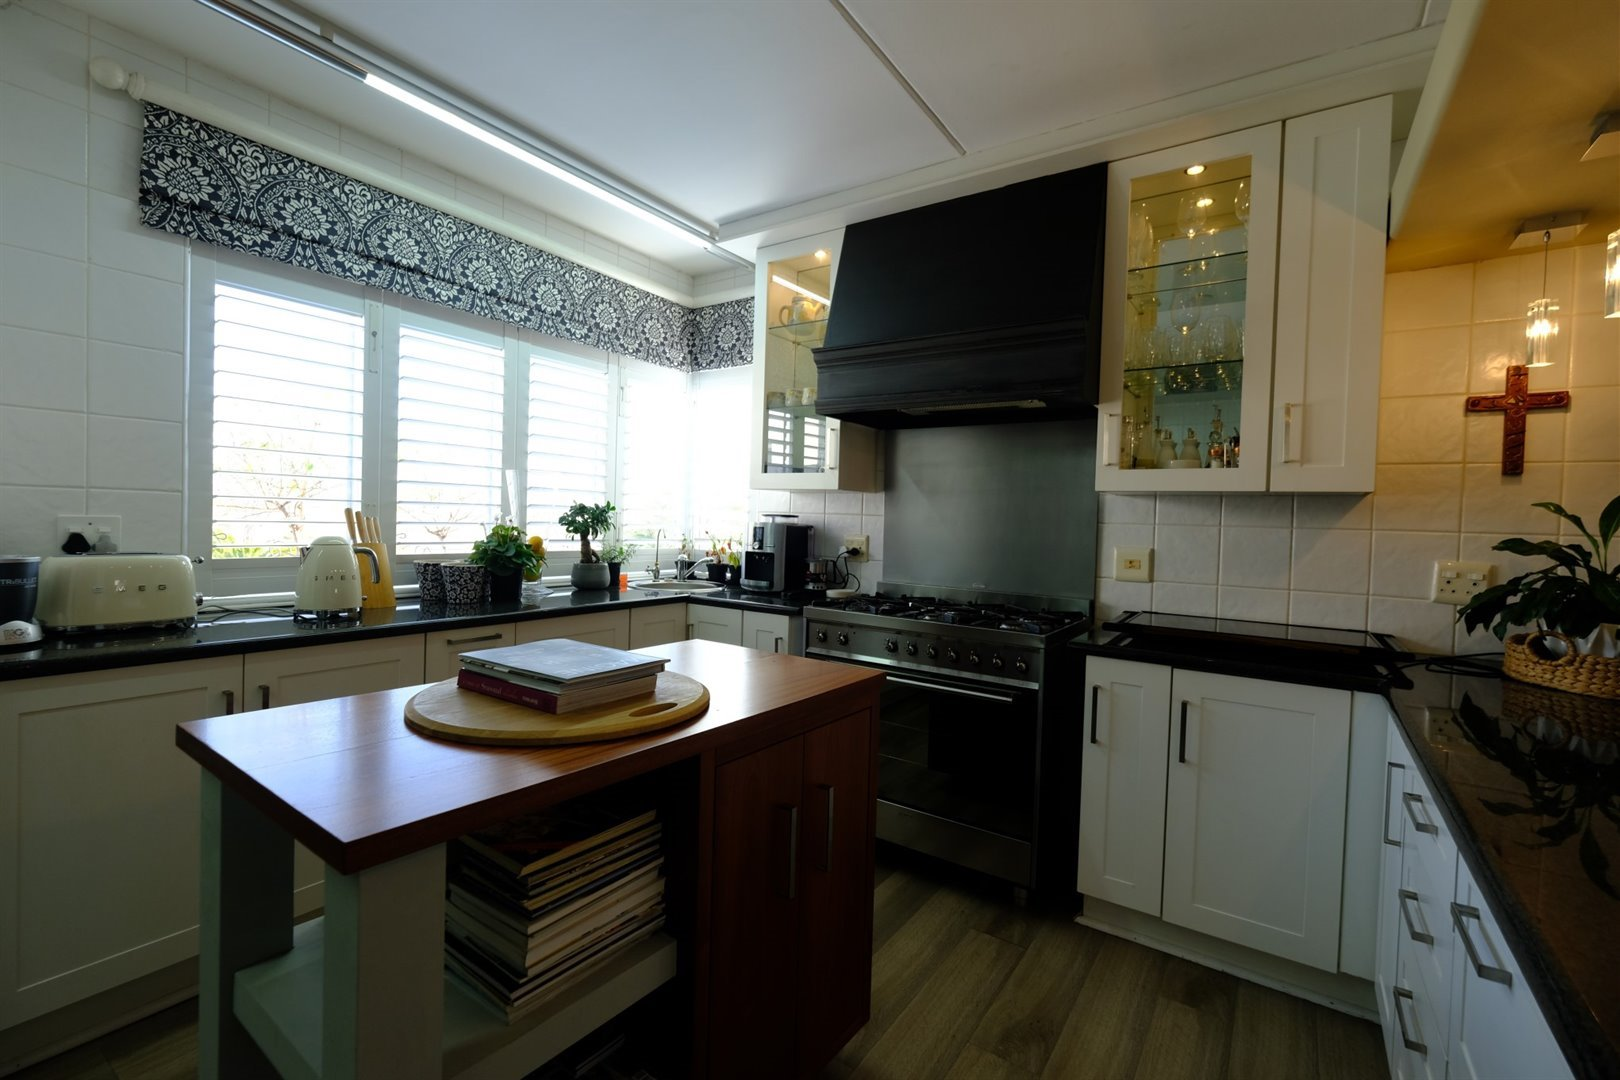 Three Rivers East property for sale. Ref No: 13378538. Picture no 9